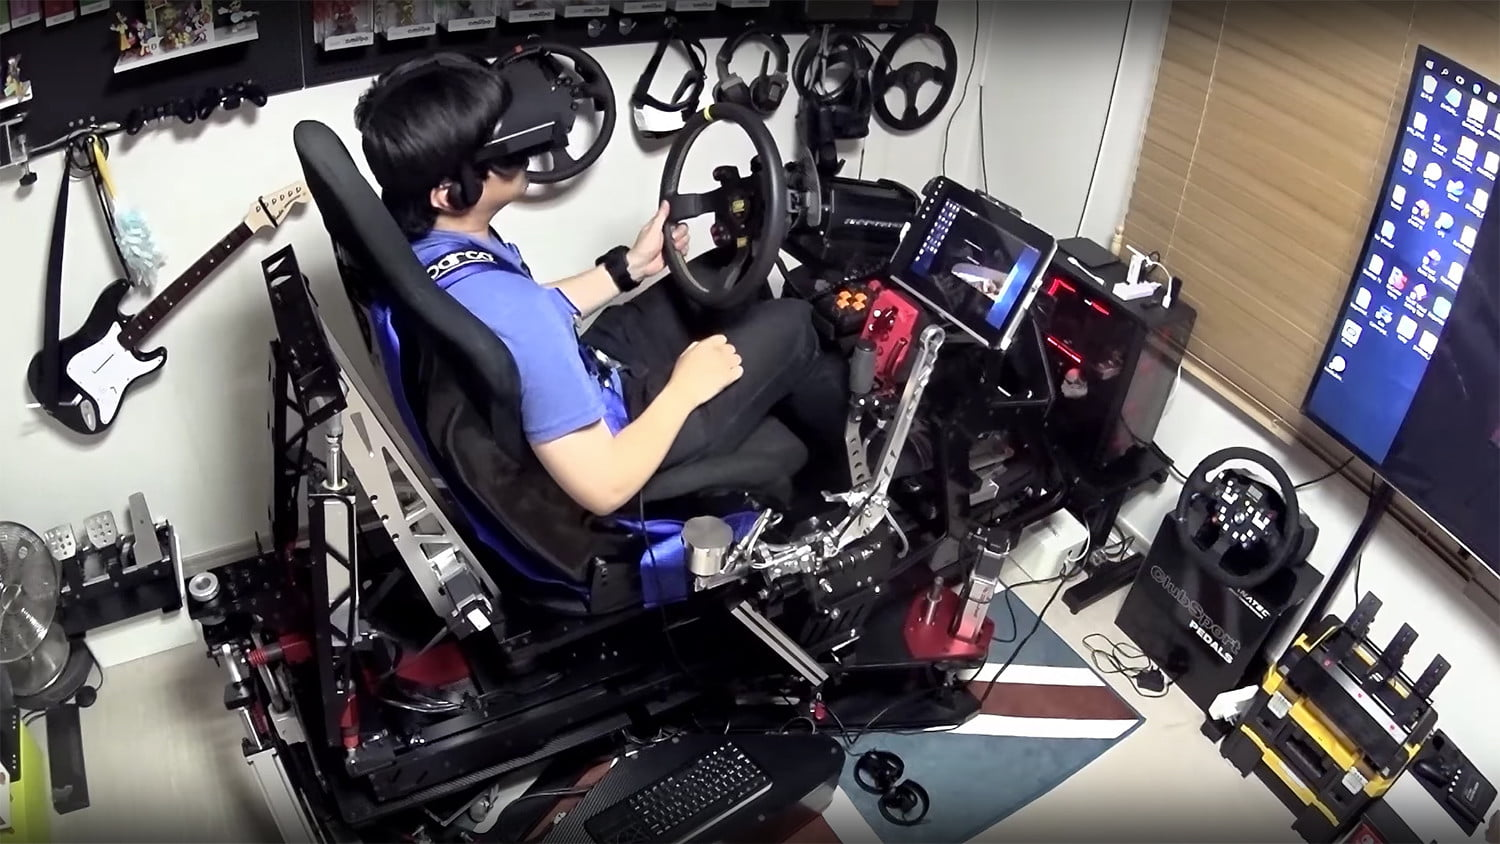 hydraulic racing simulator chair ergonomic manufacturers check out this amazing 25 000 build digital trends